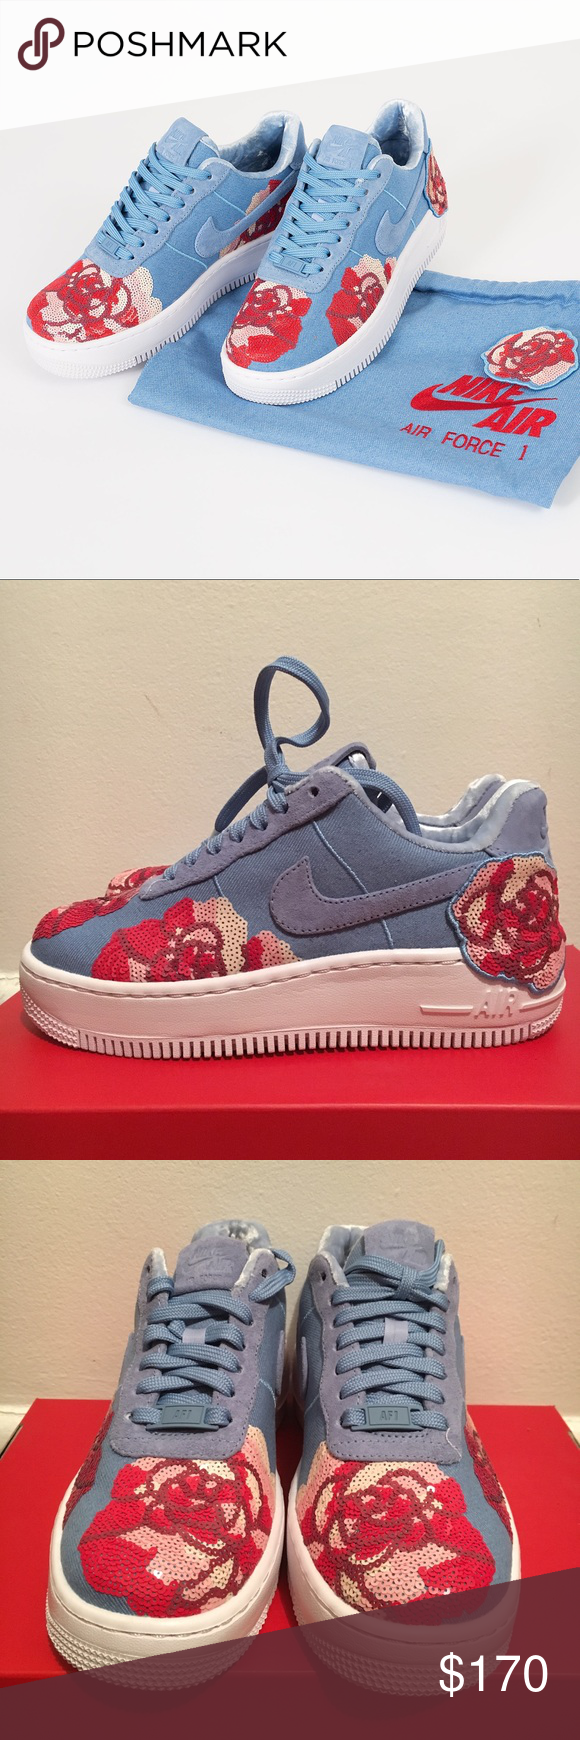 info for e7829 8848e NEW Womens Airforce 1 Upstep LX OFFER Womens AF1 Low Floral Sequin